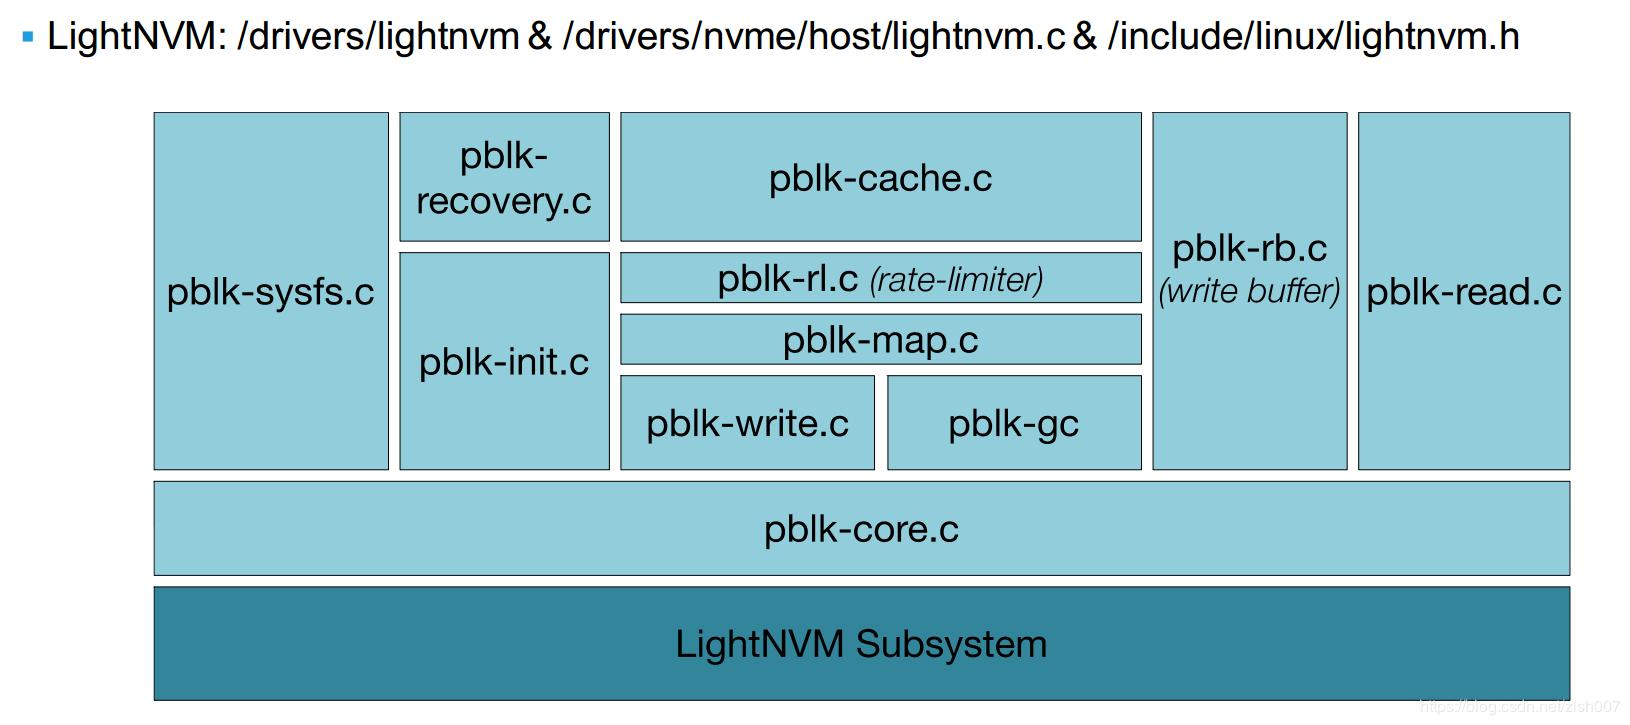 About creating OC SSD device pblk using qemu-nvme, and